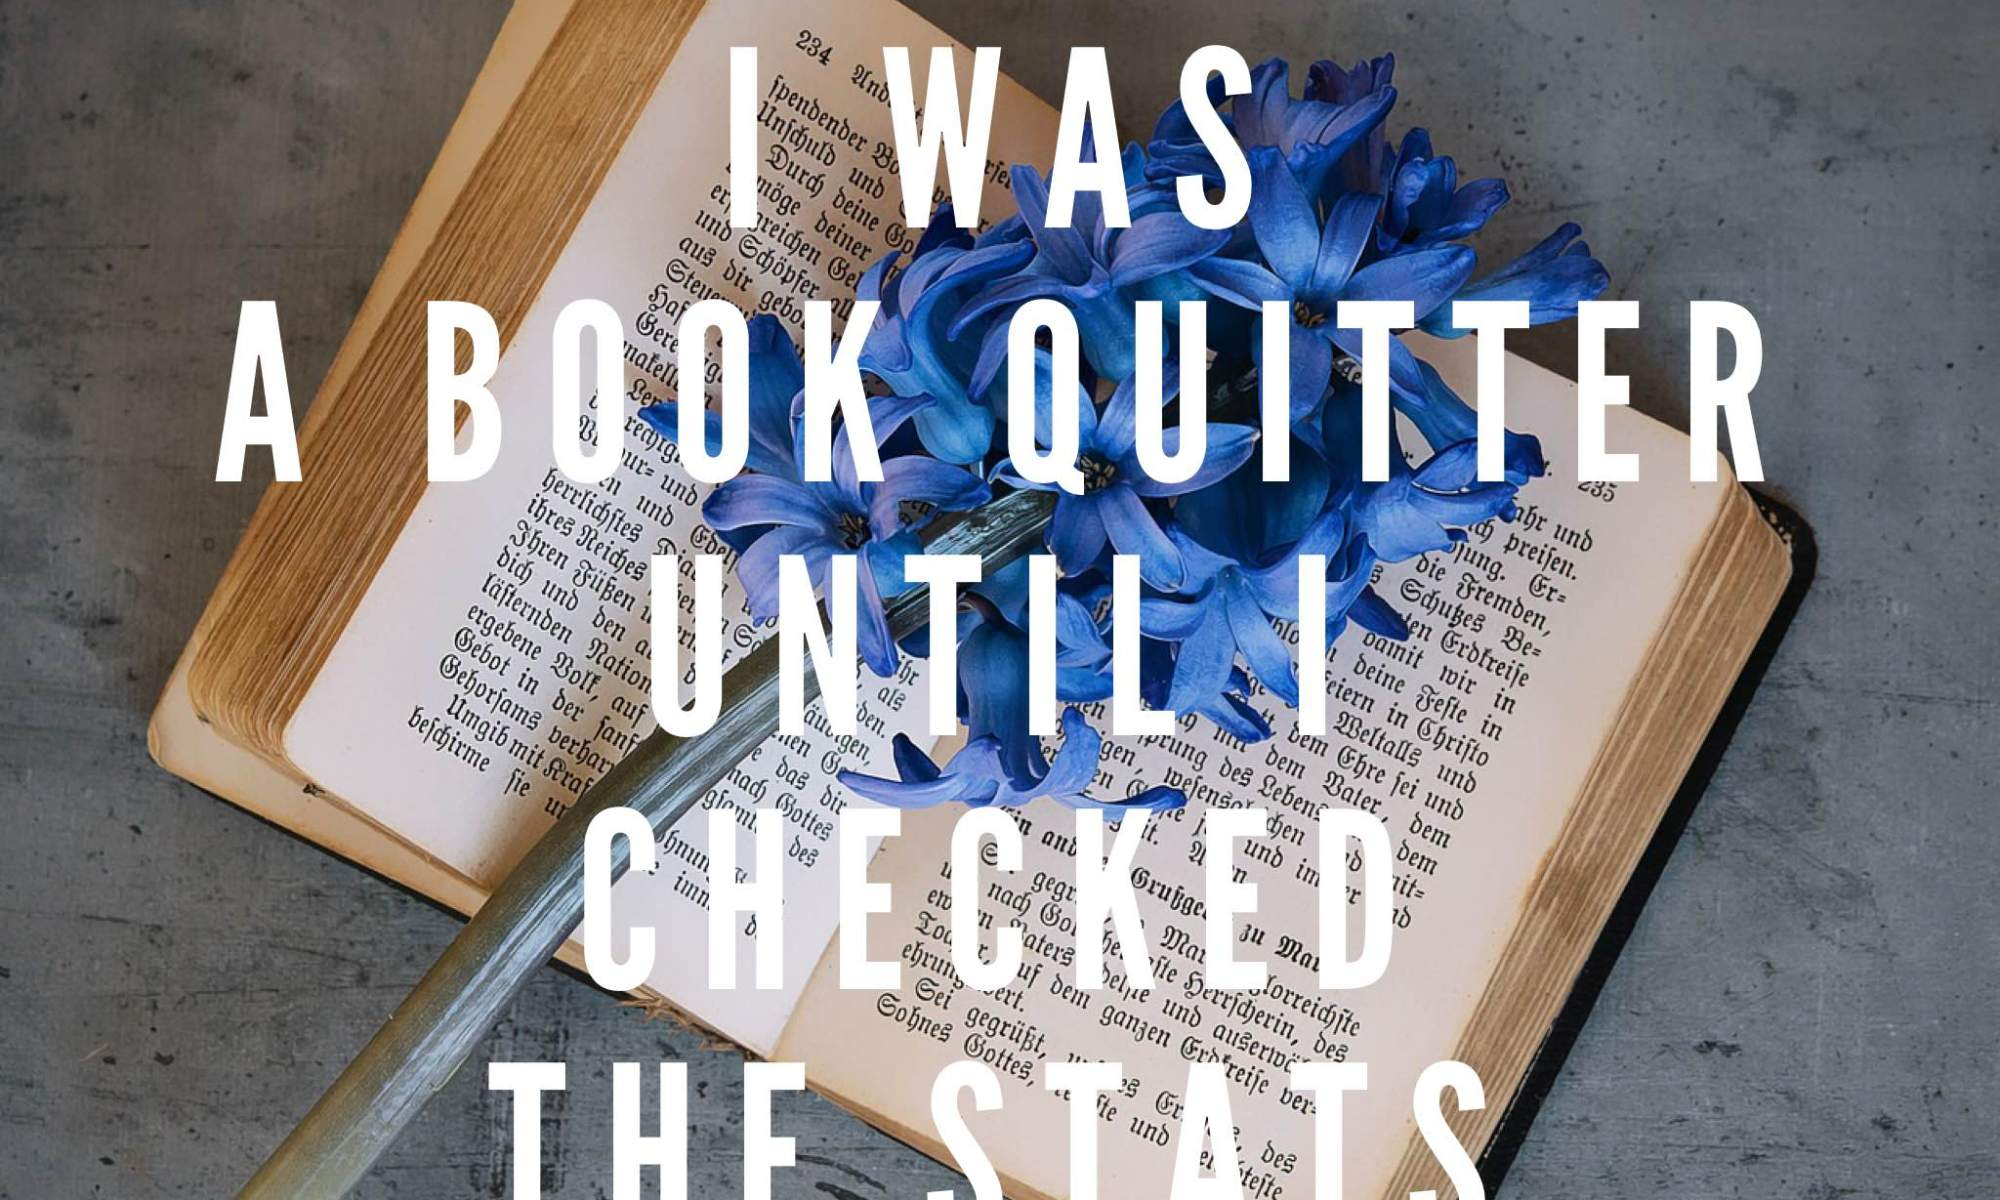 I thought this was going to be a piece in which I gleefully recount my exploits as a book quitter. Except I haven't actually quit on many books this year.